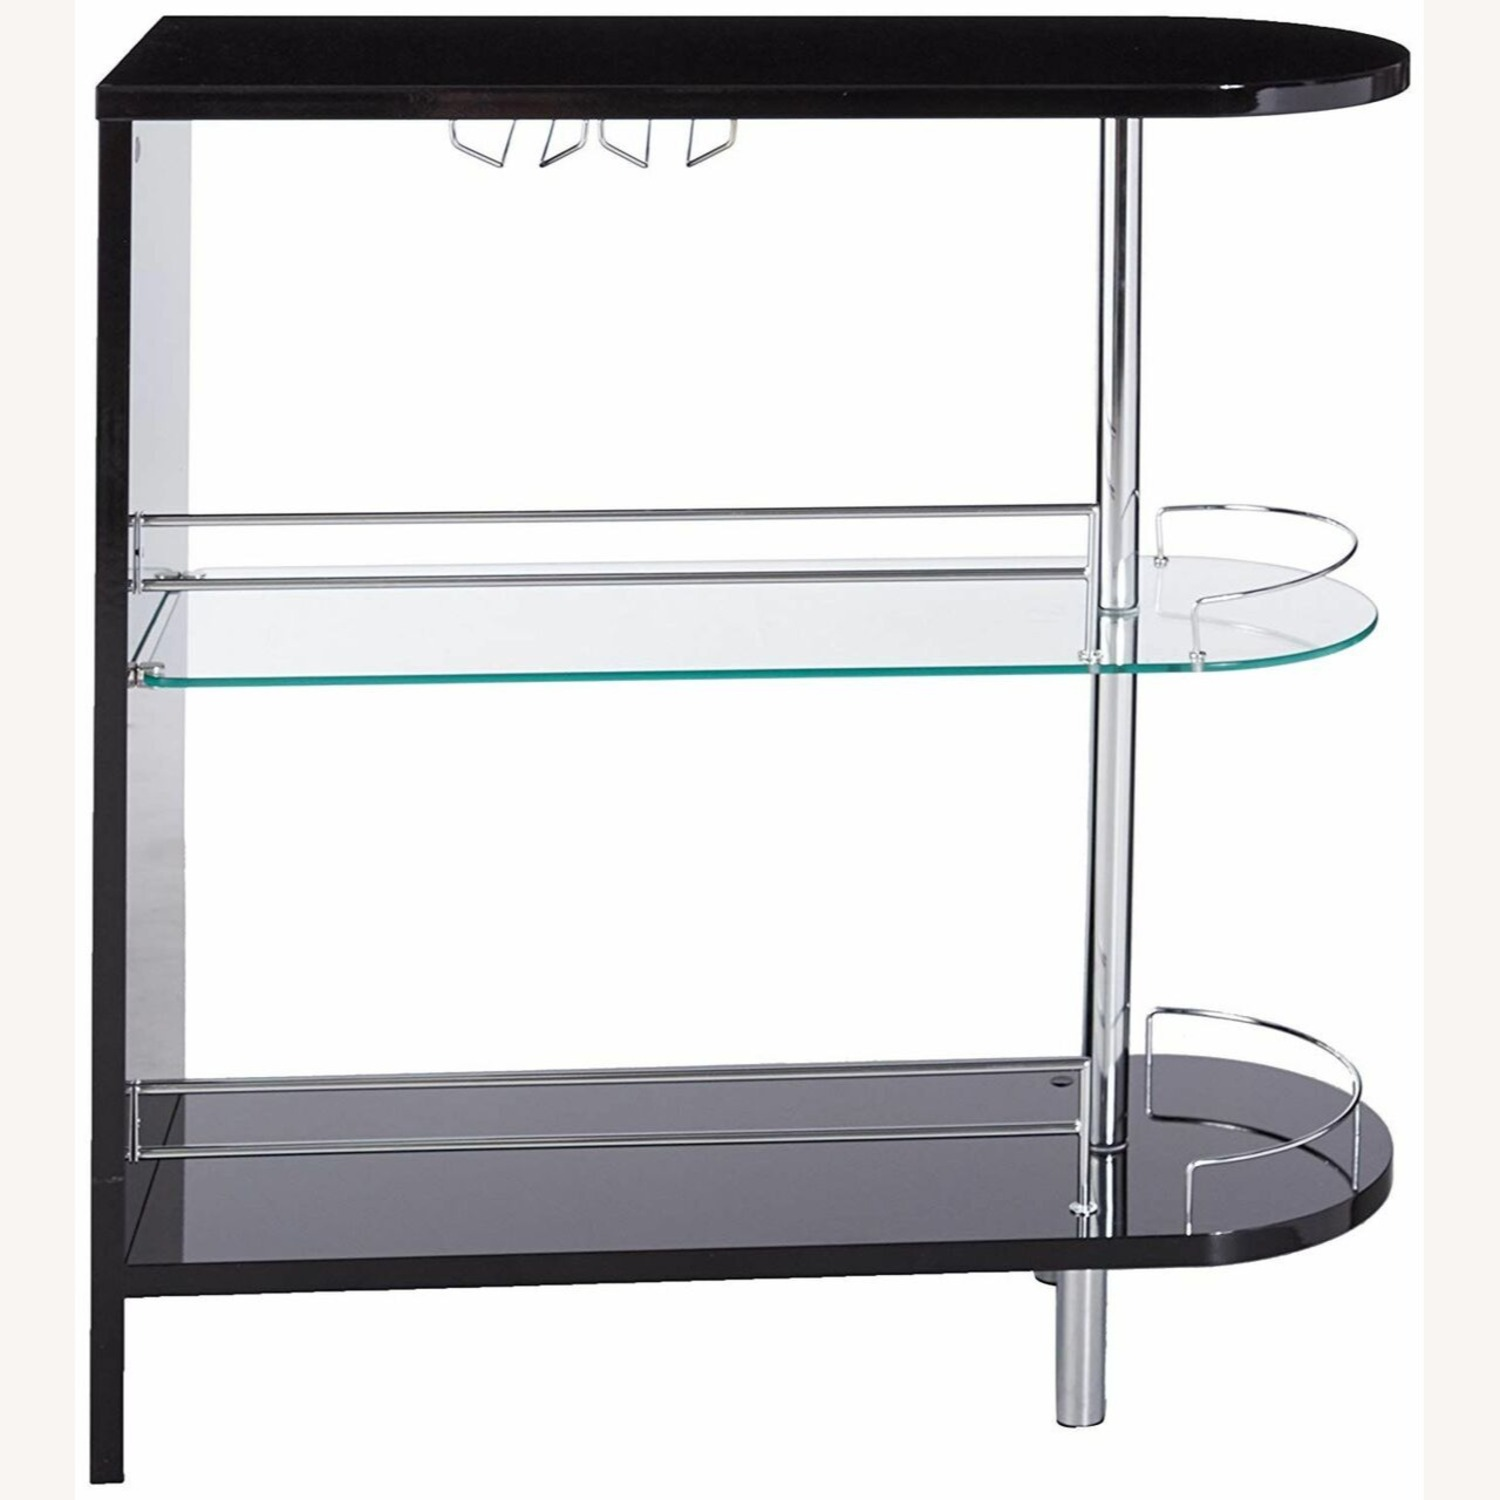 Bar Unit In Glossy Black W/ Rounded Ends - image-1